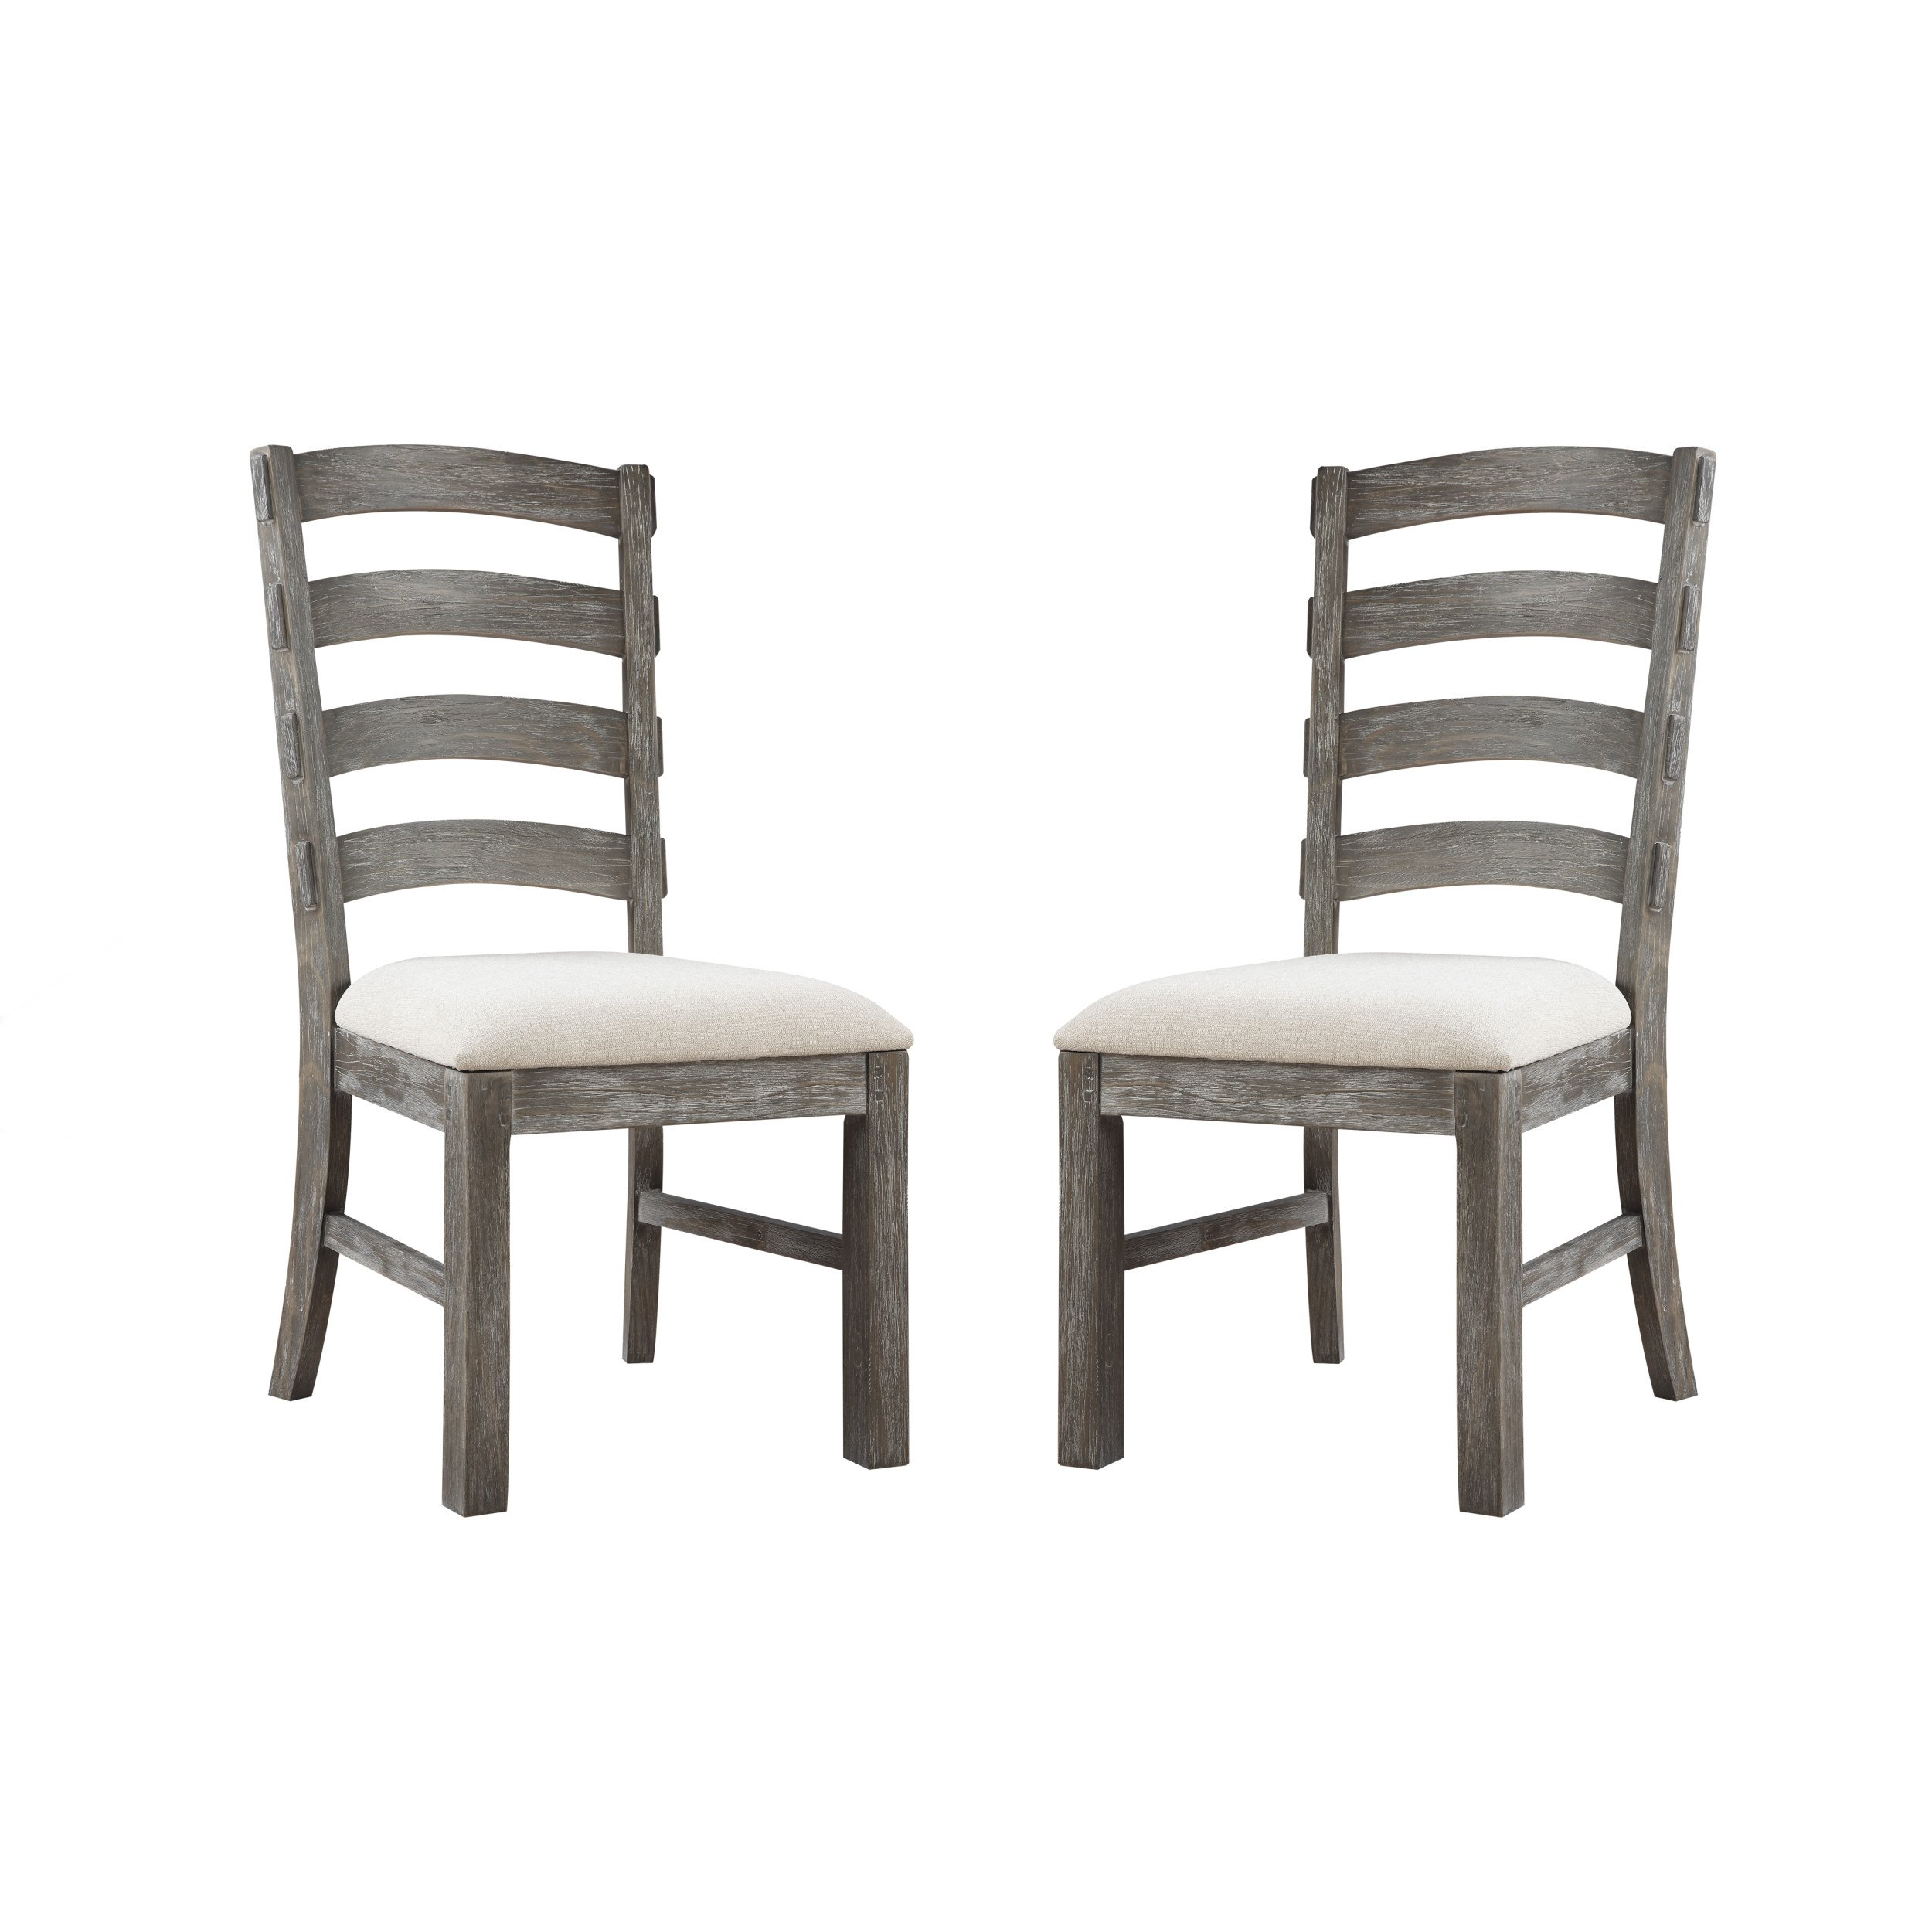 Emerald Home Paladin Rustic Charcoal Gray Dining Chair with Upholstered Seat And Ladder Back, Set of Two by Emerald Home Furnishings (Image #1)